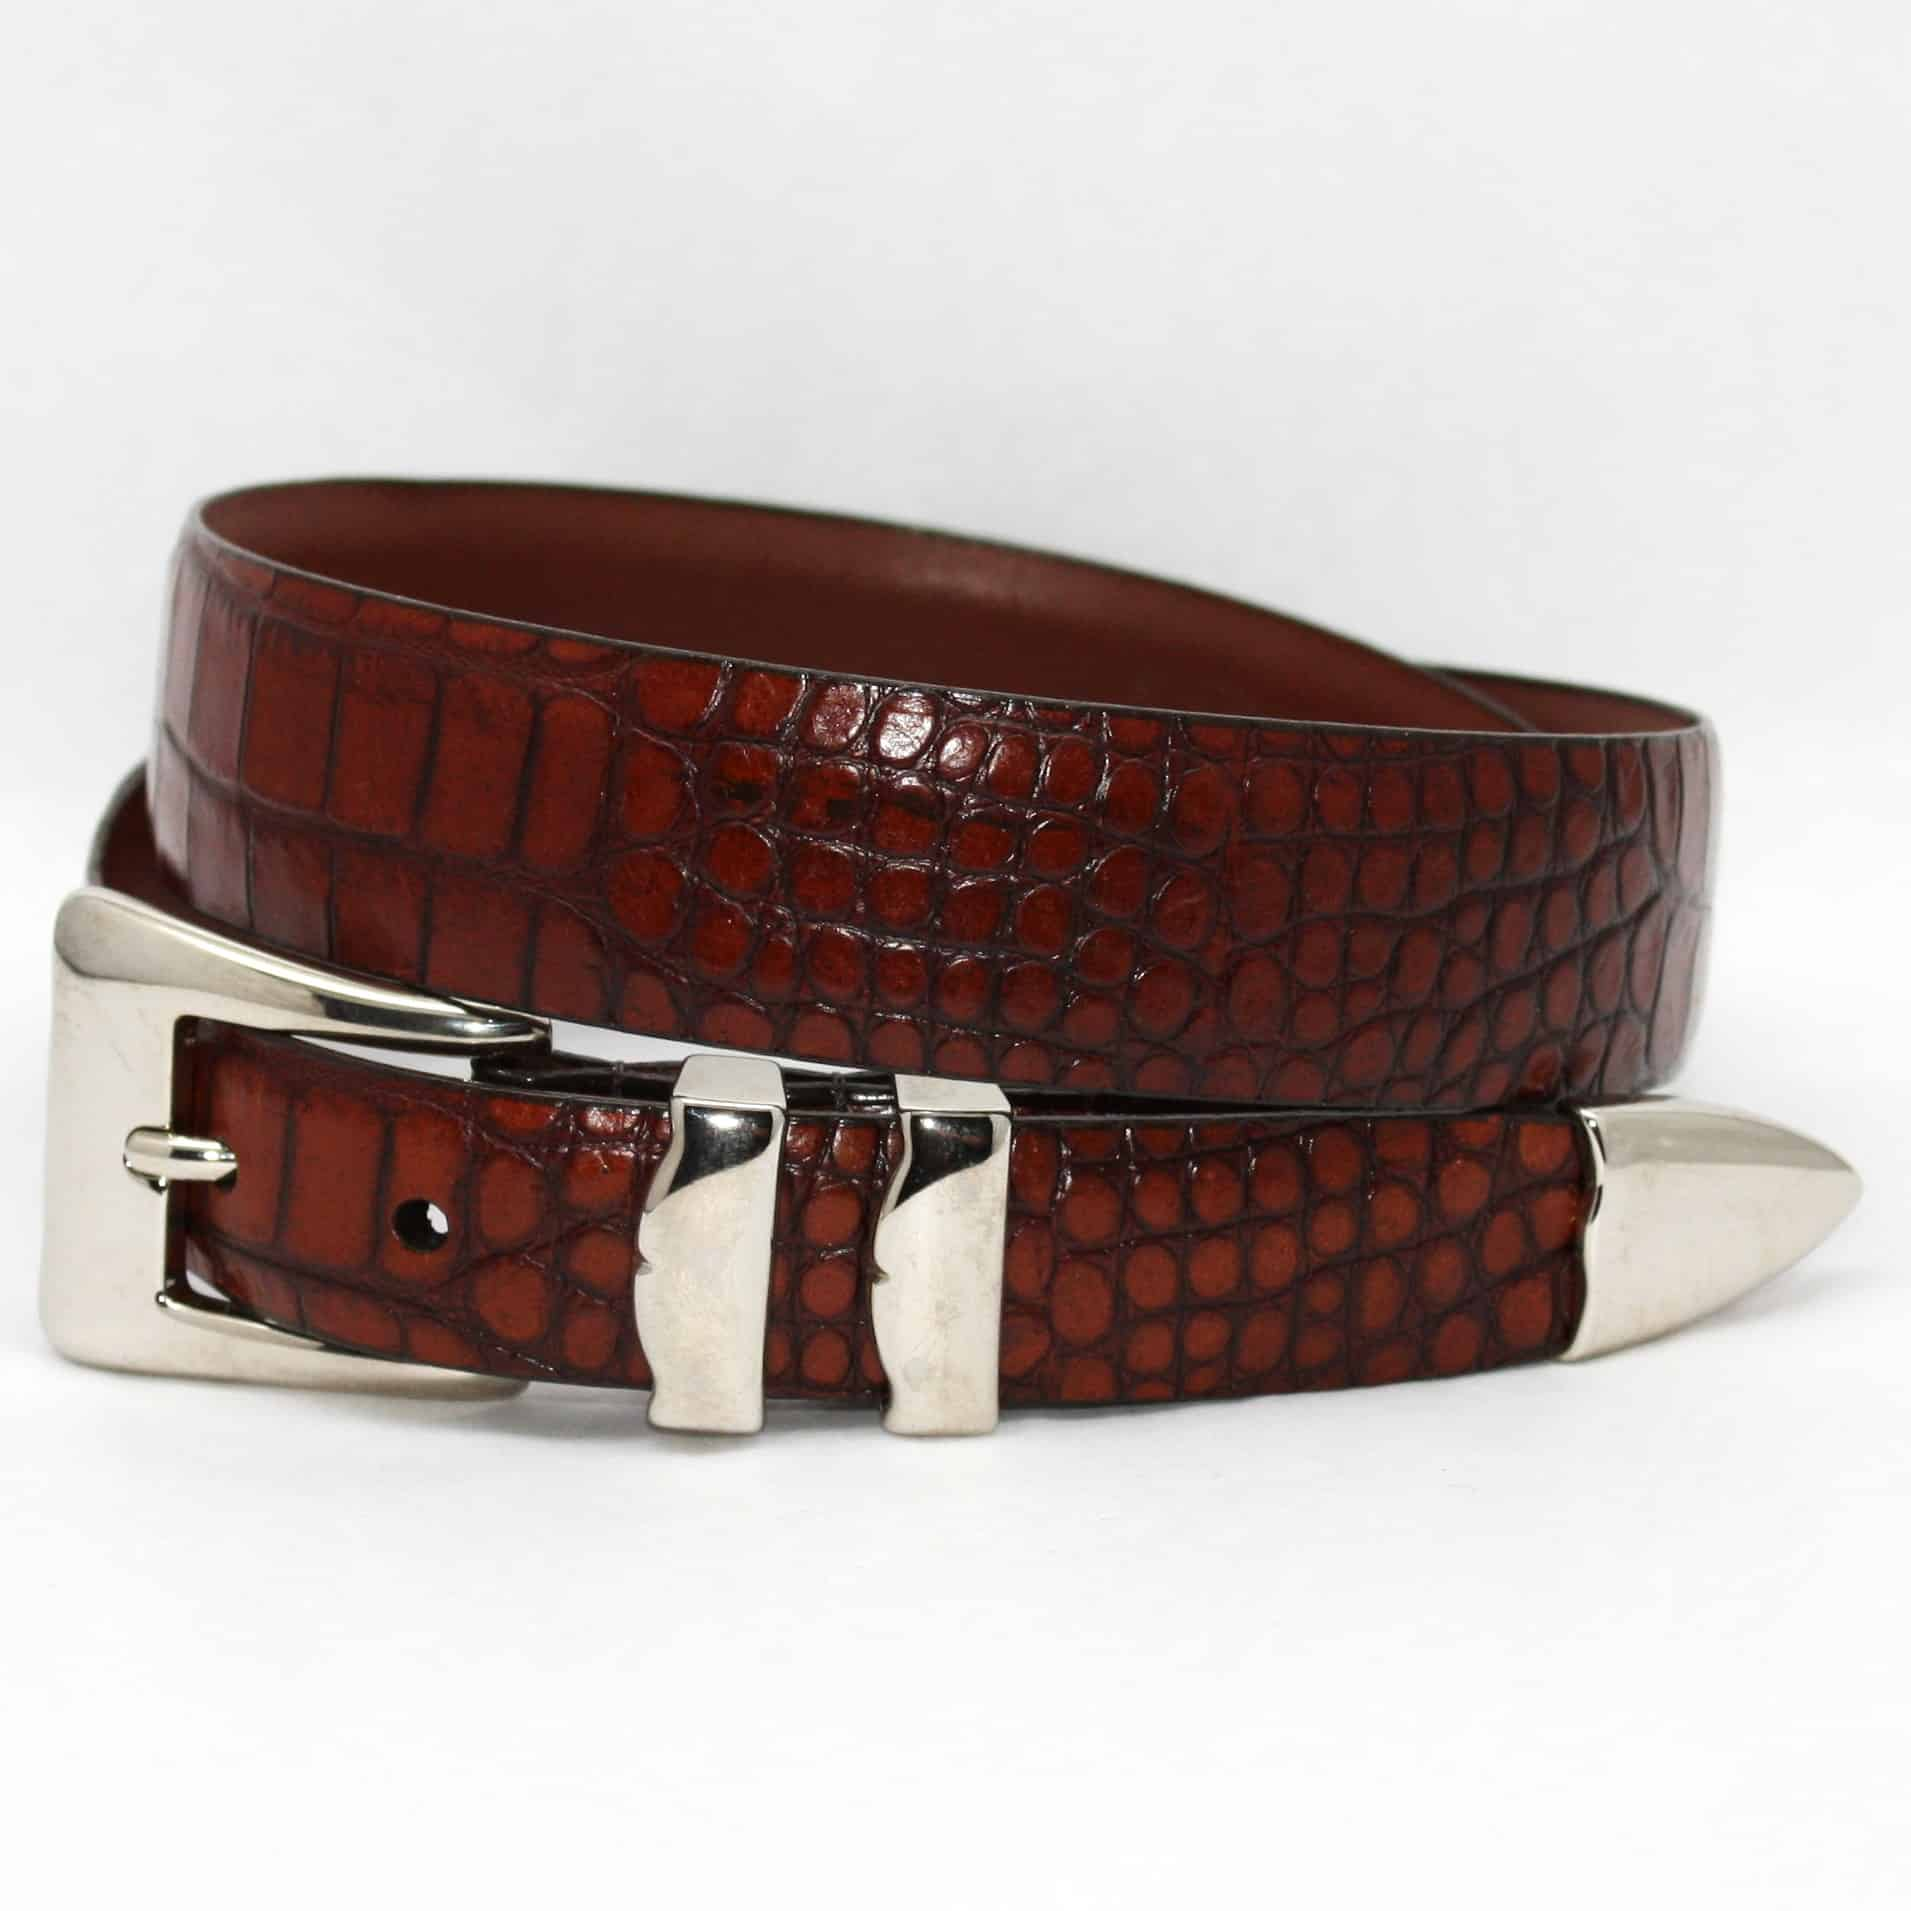 Alligator Embossed Calfskin Belt With 4pc Buckle Set - Cognac,BELT,Gent Row, | GentRow.com